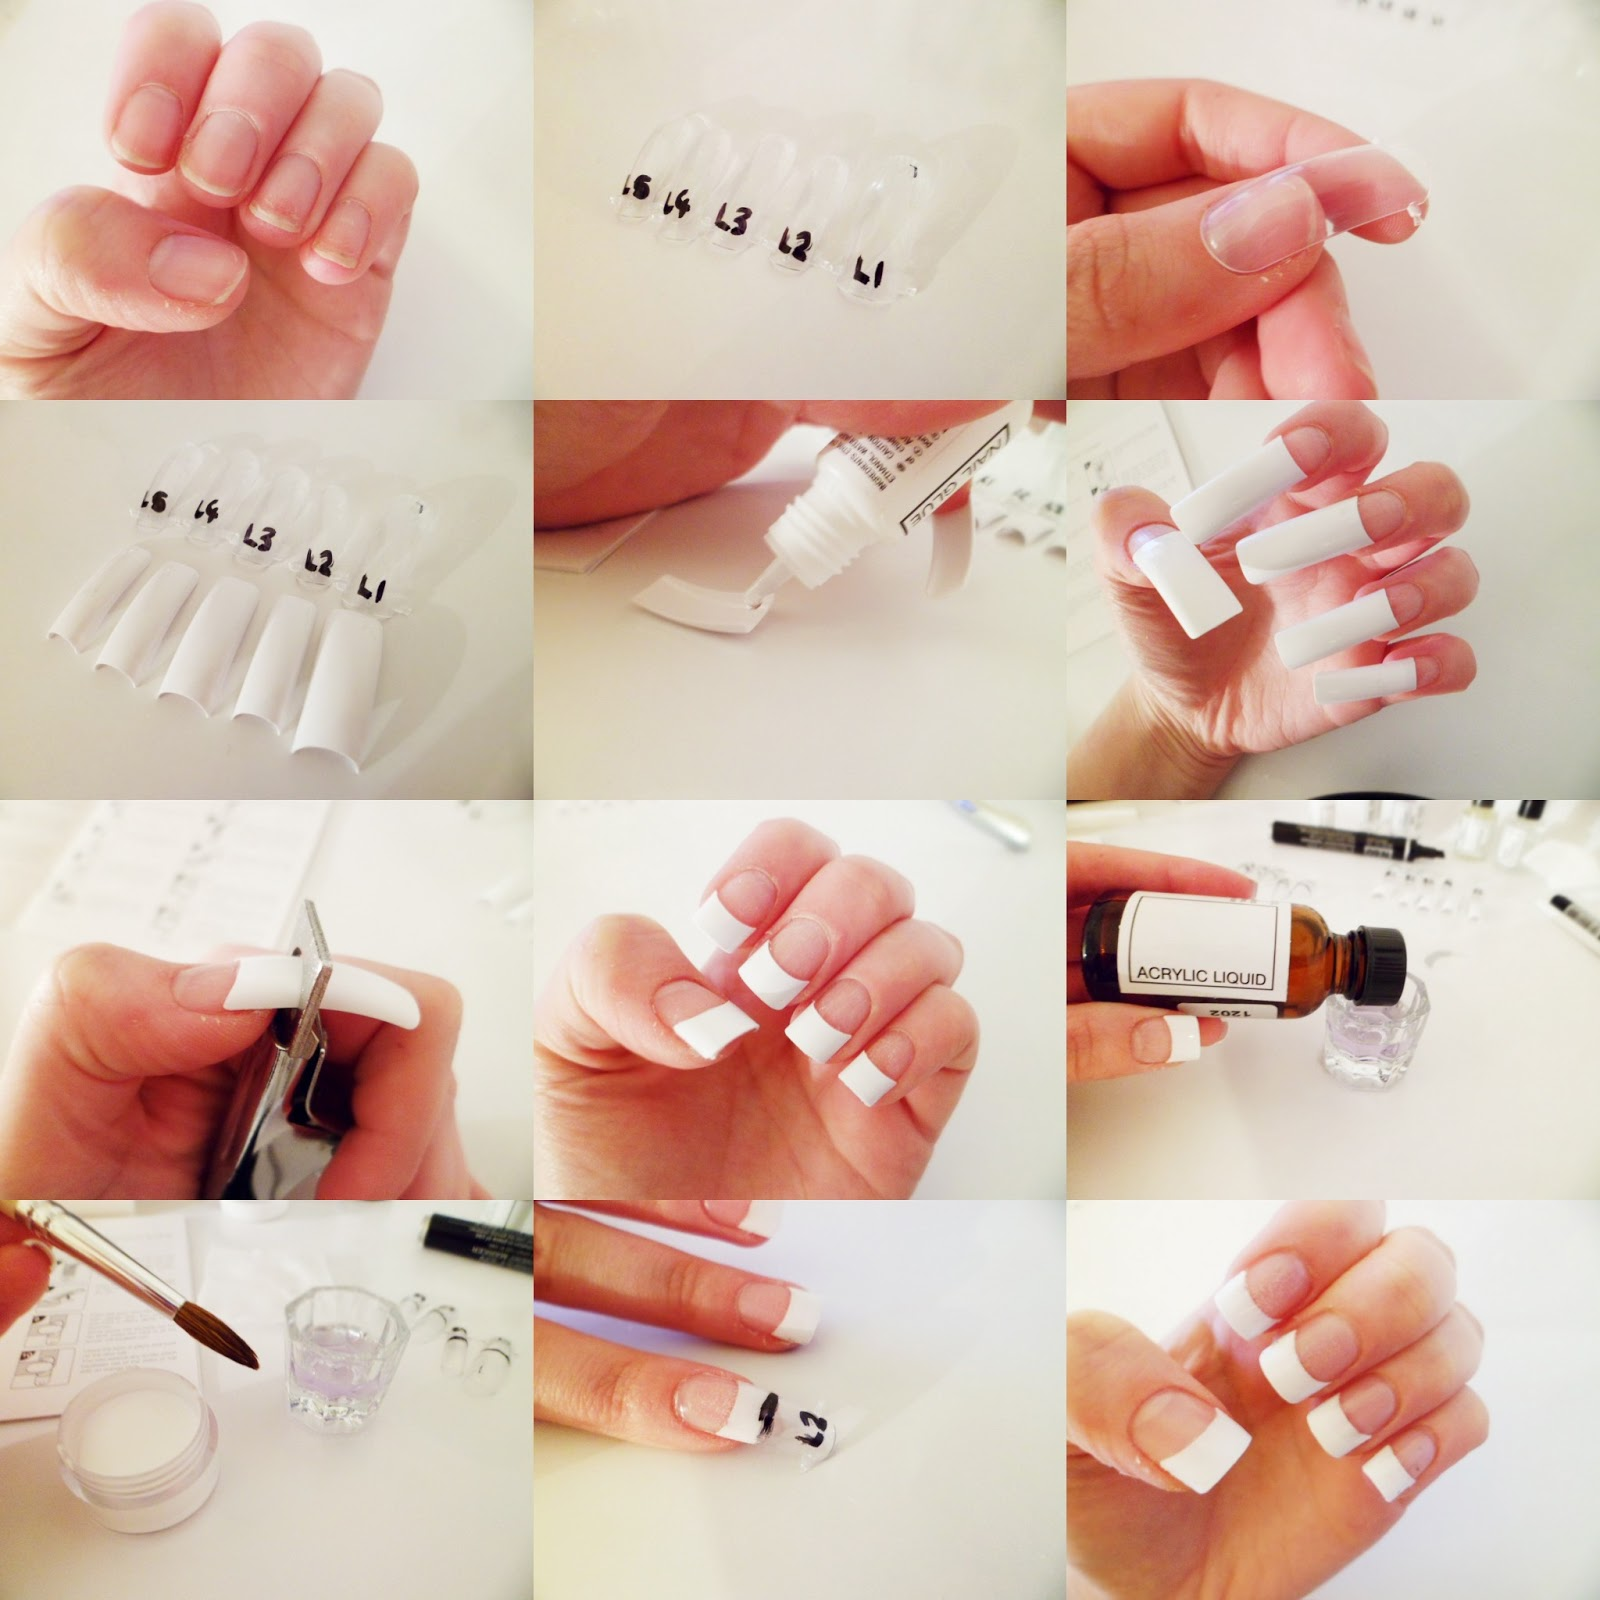 Do it yourself acrylic nails kit nails gallery do it yourself acrylic nails kit image solutioingenieria Image collections